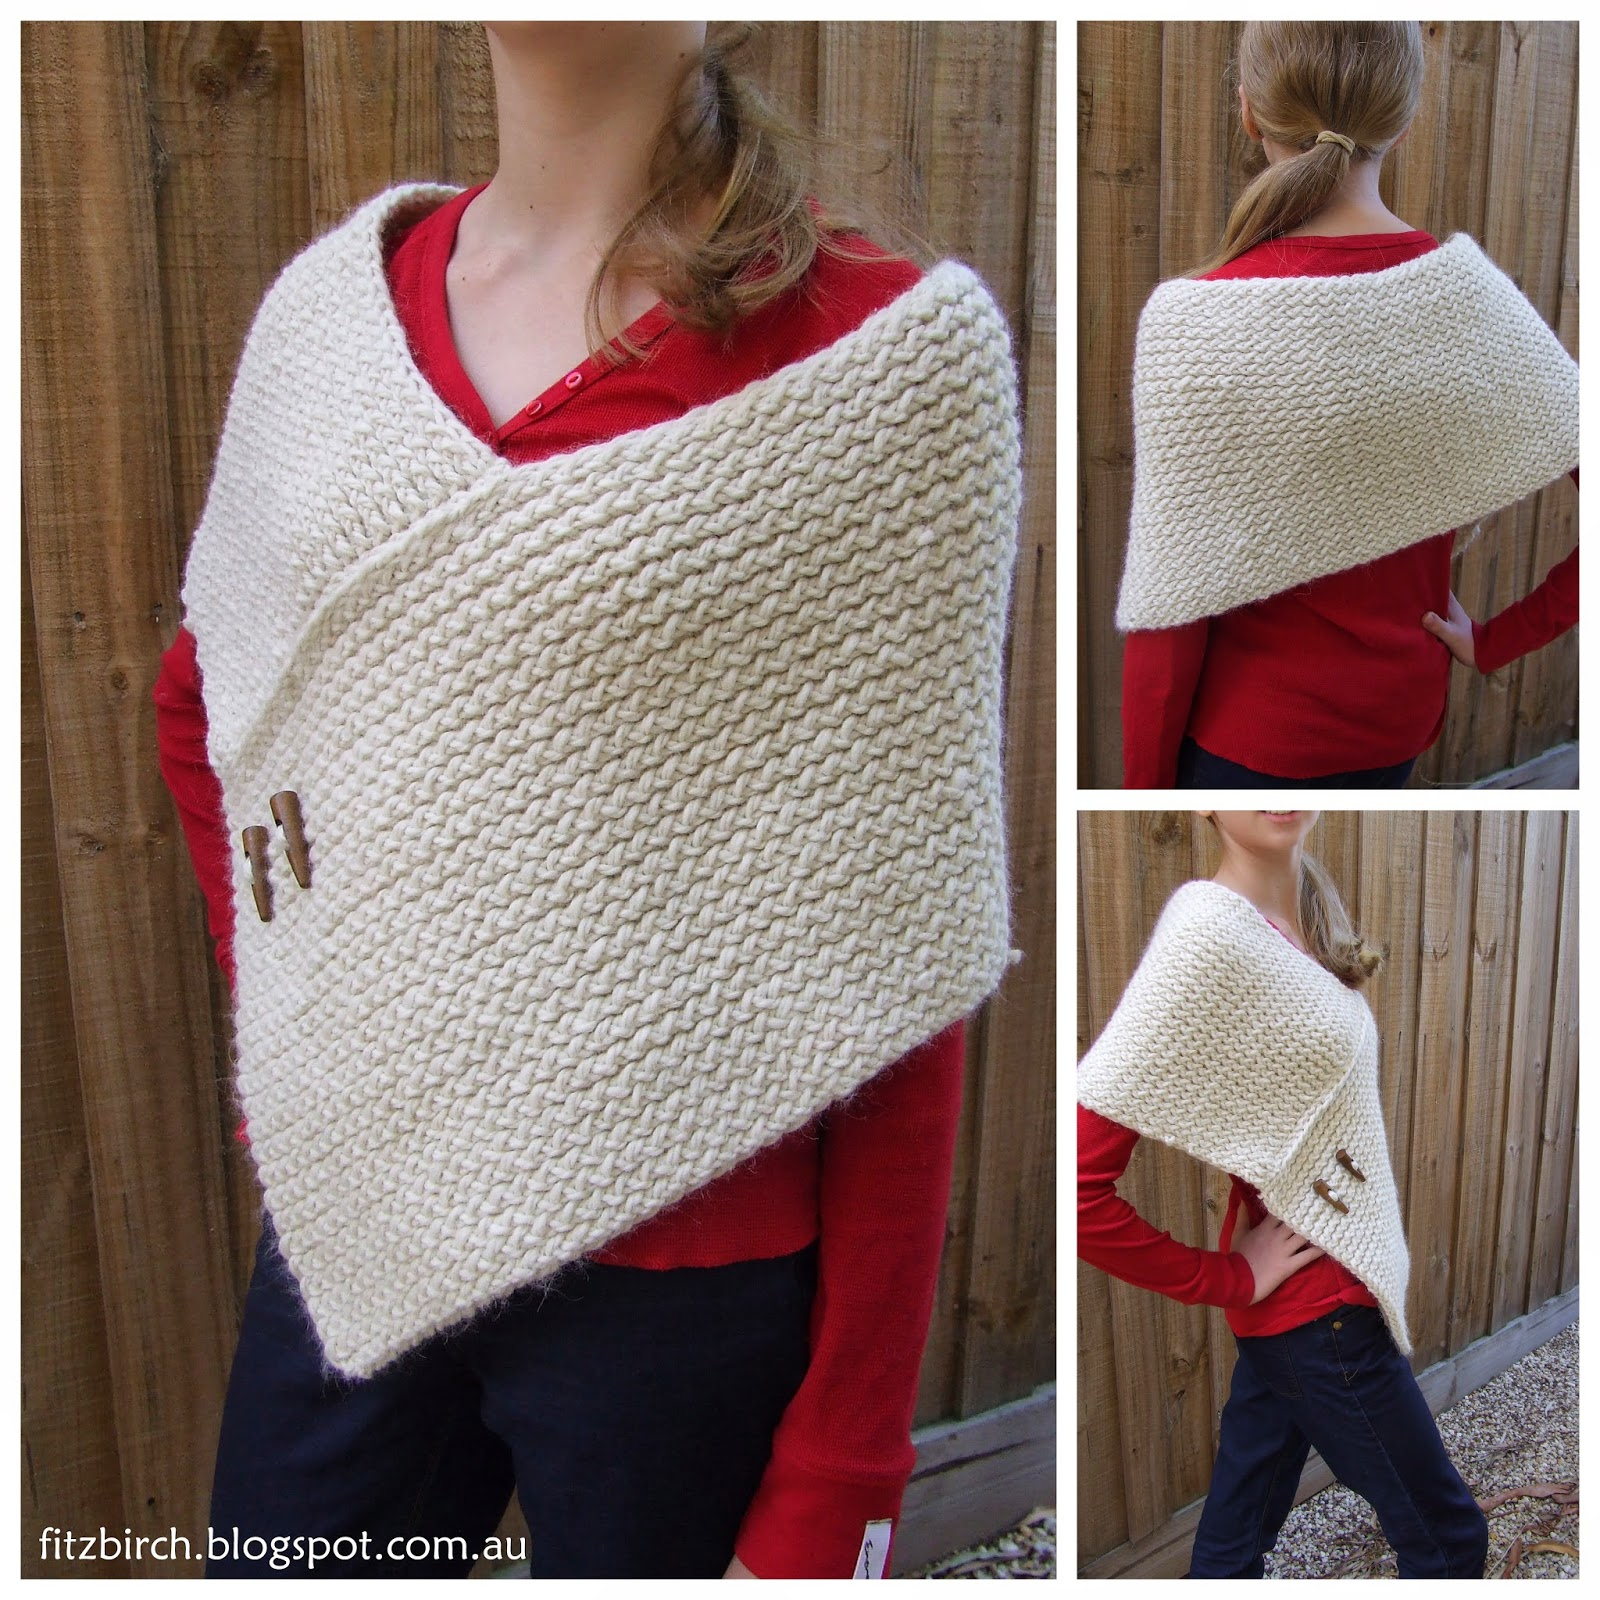 Loom Knitting Free Patterns : Fitzbirch crafts top free wrap patterns